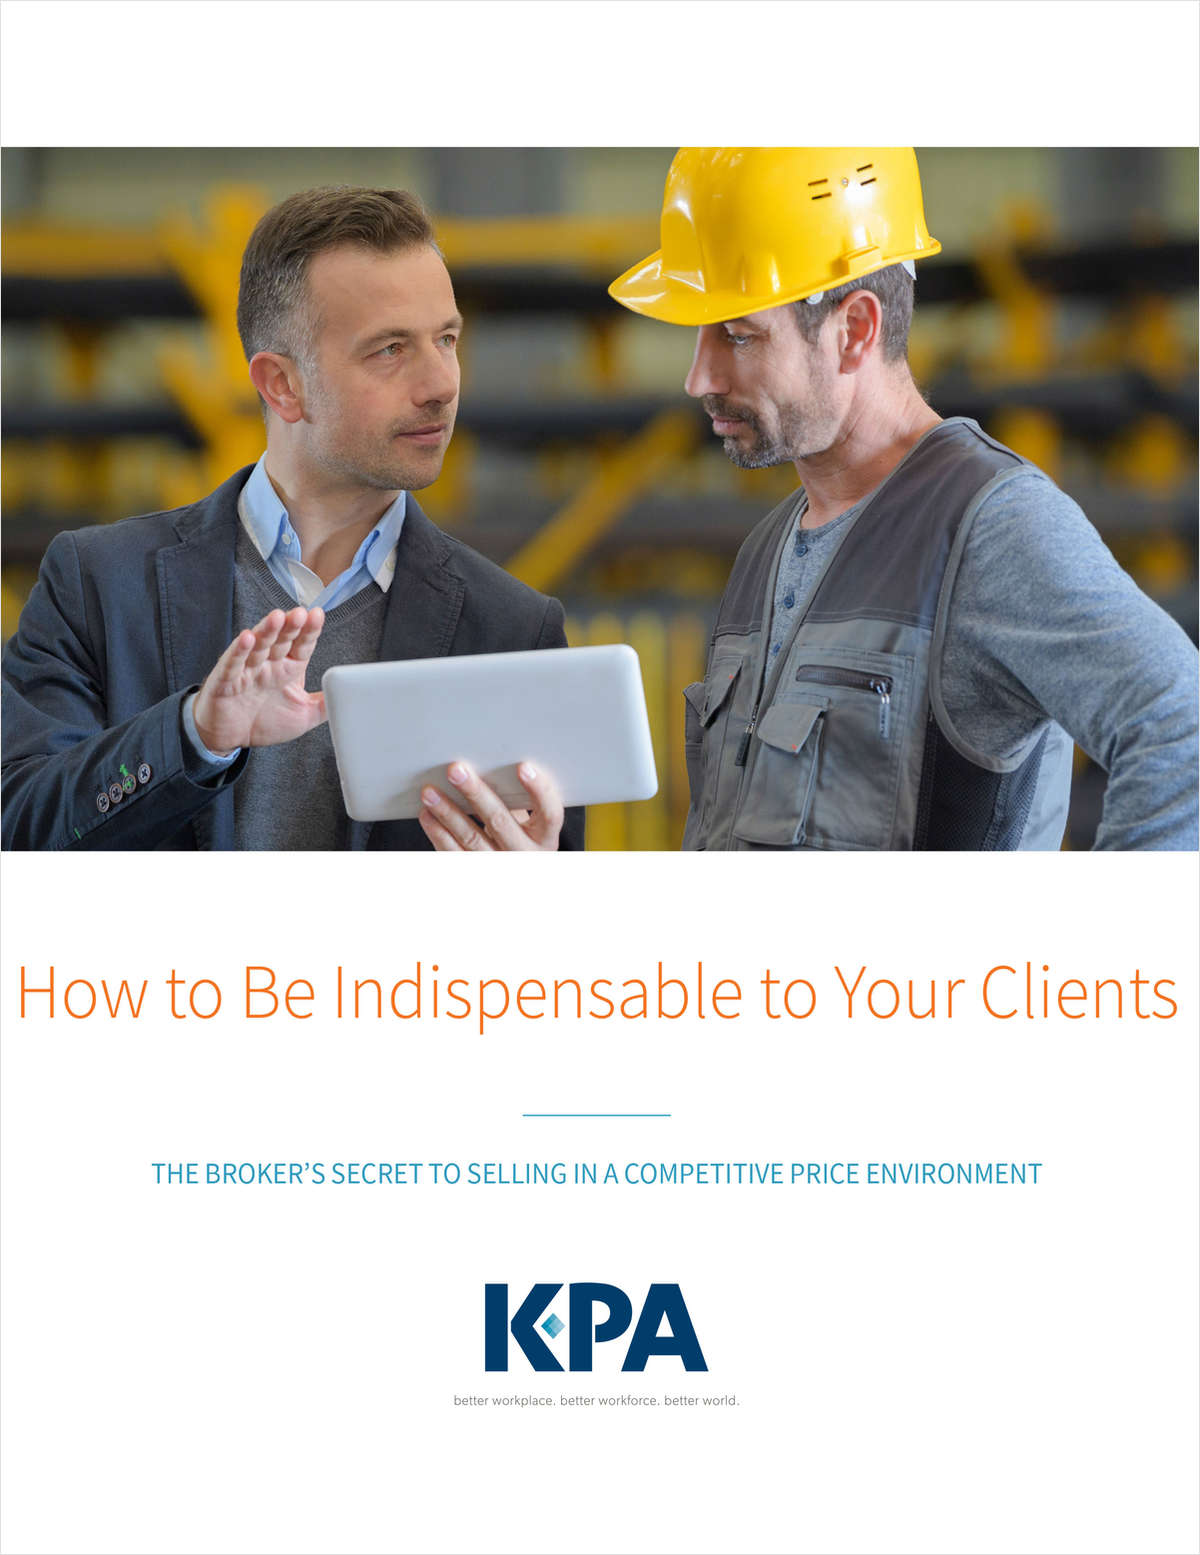 How to Be Indispensable to Your Clients